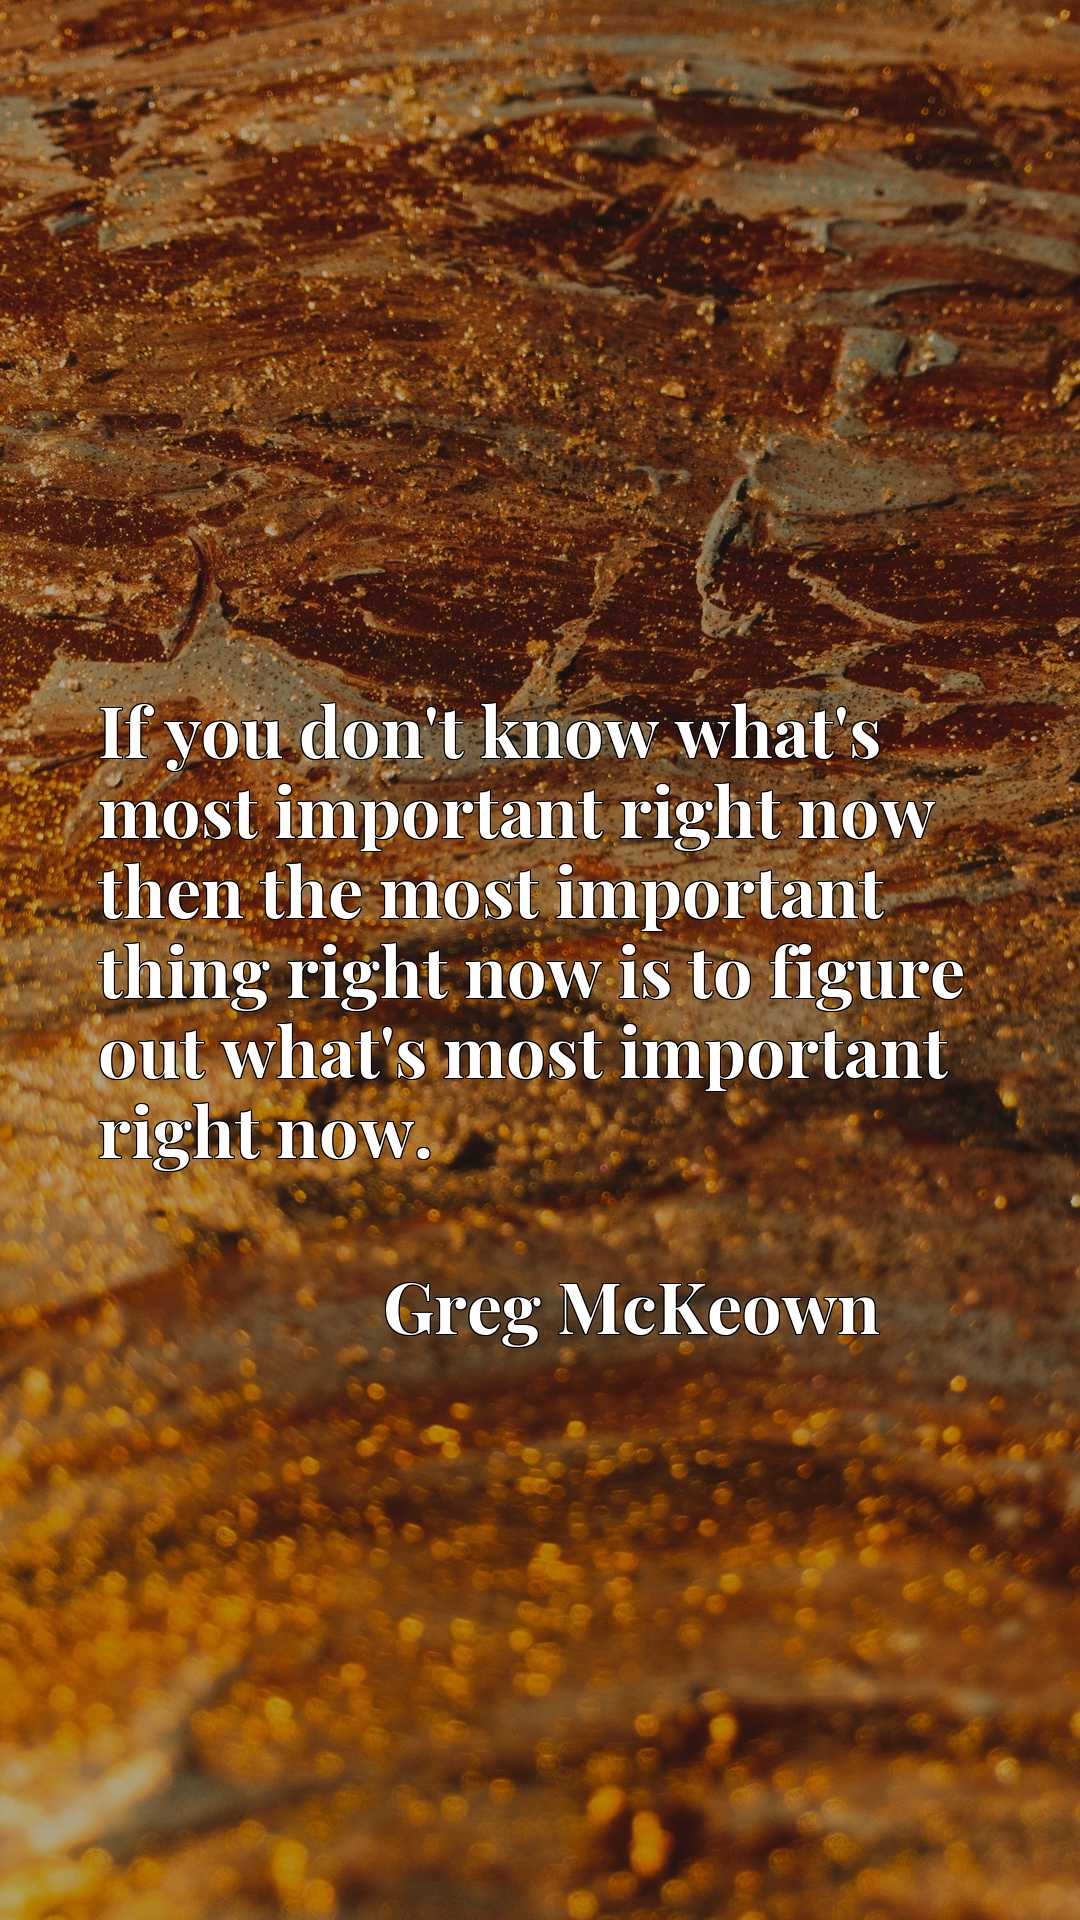 If you don't know what's most important right now then the most important thing right now is to figure out what's most important right now.